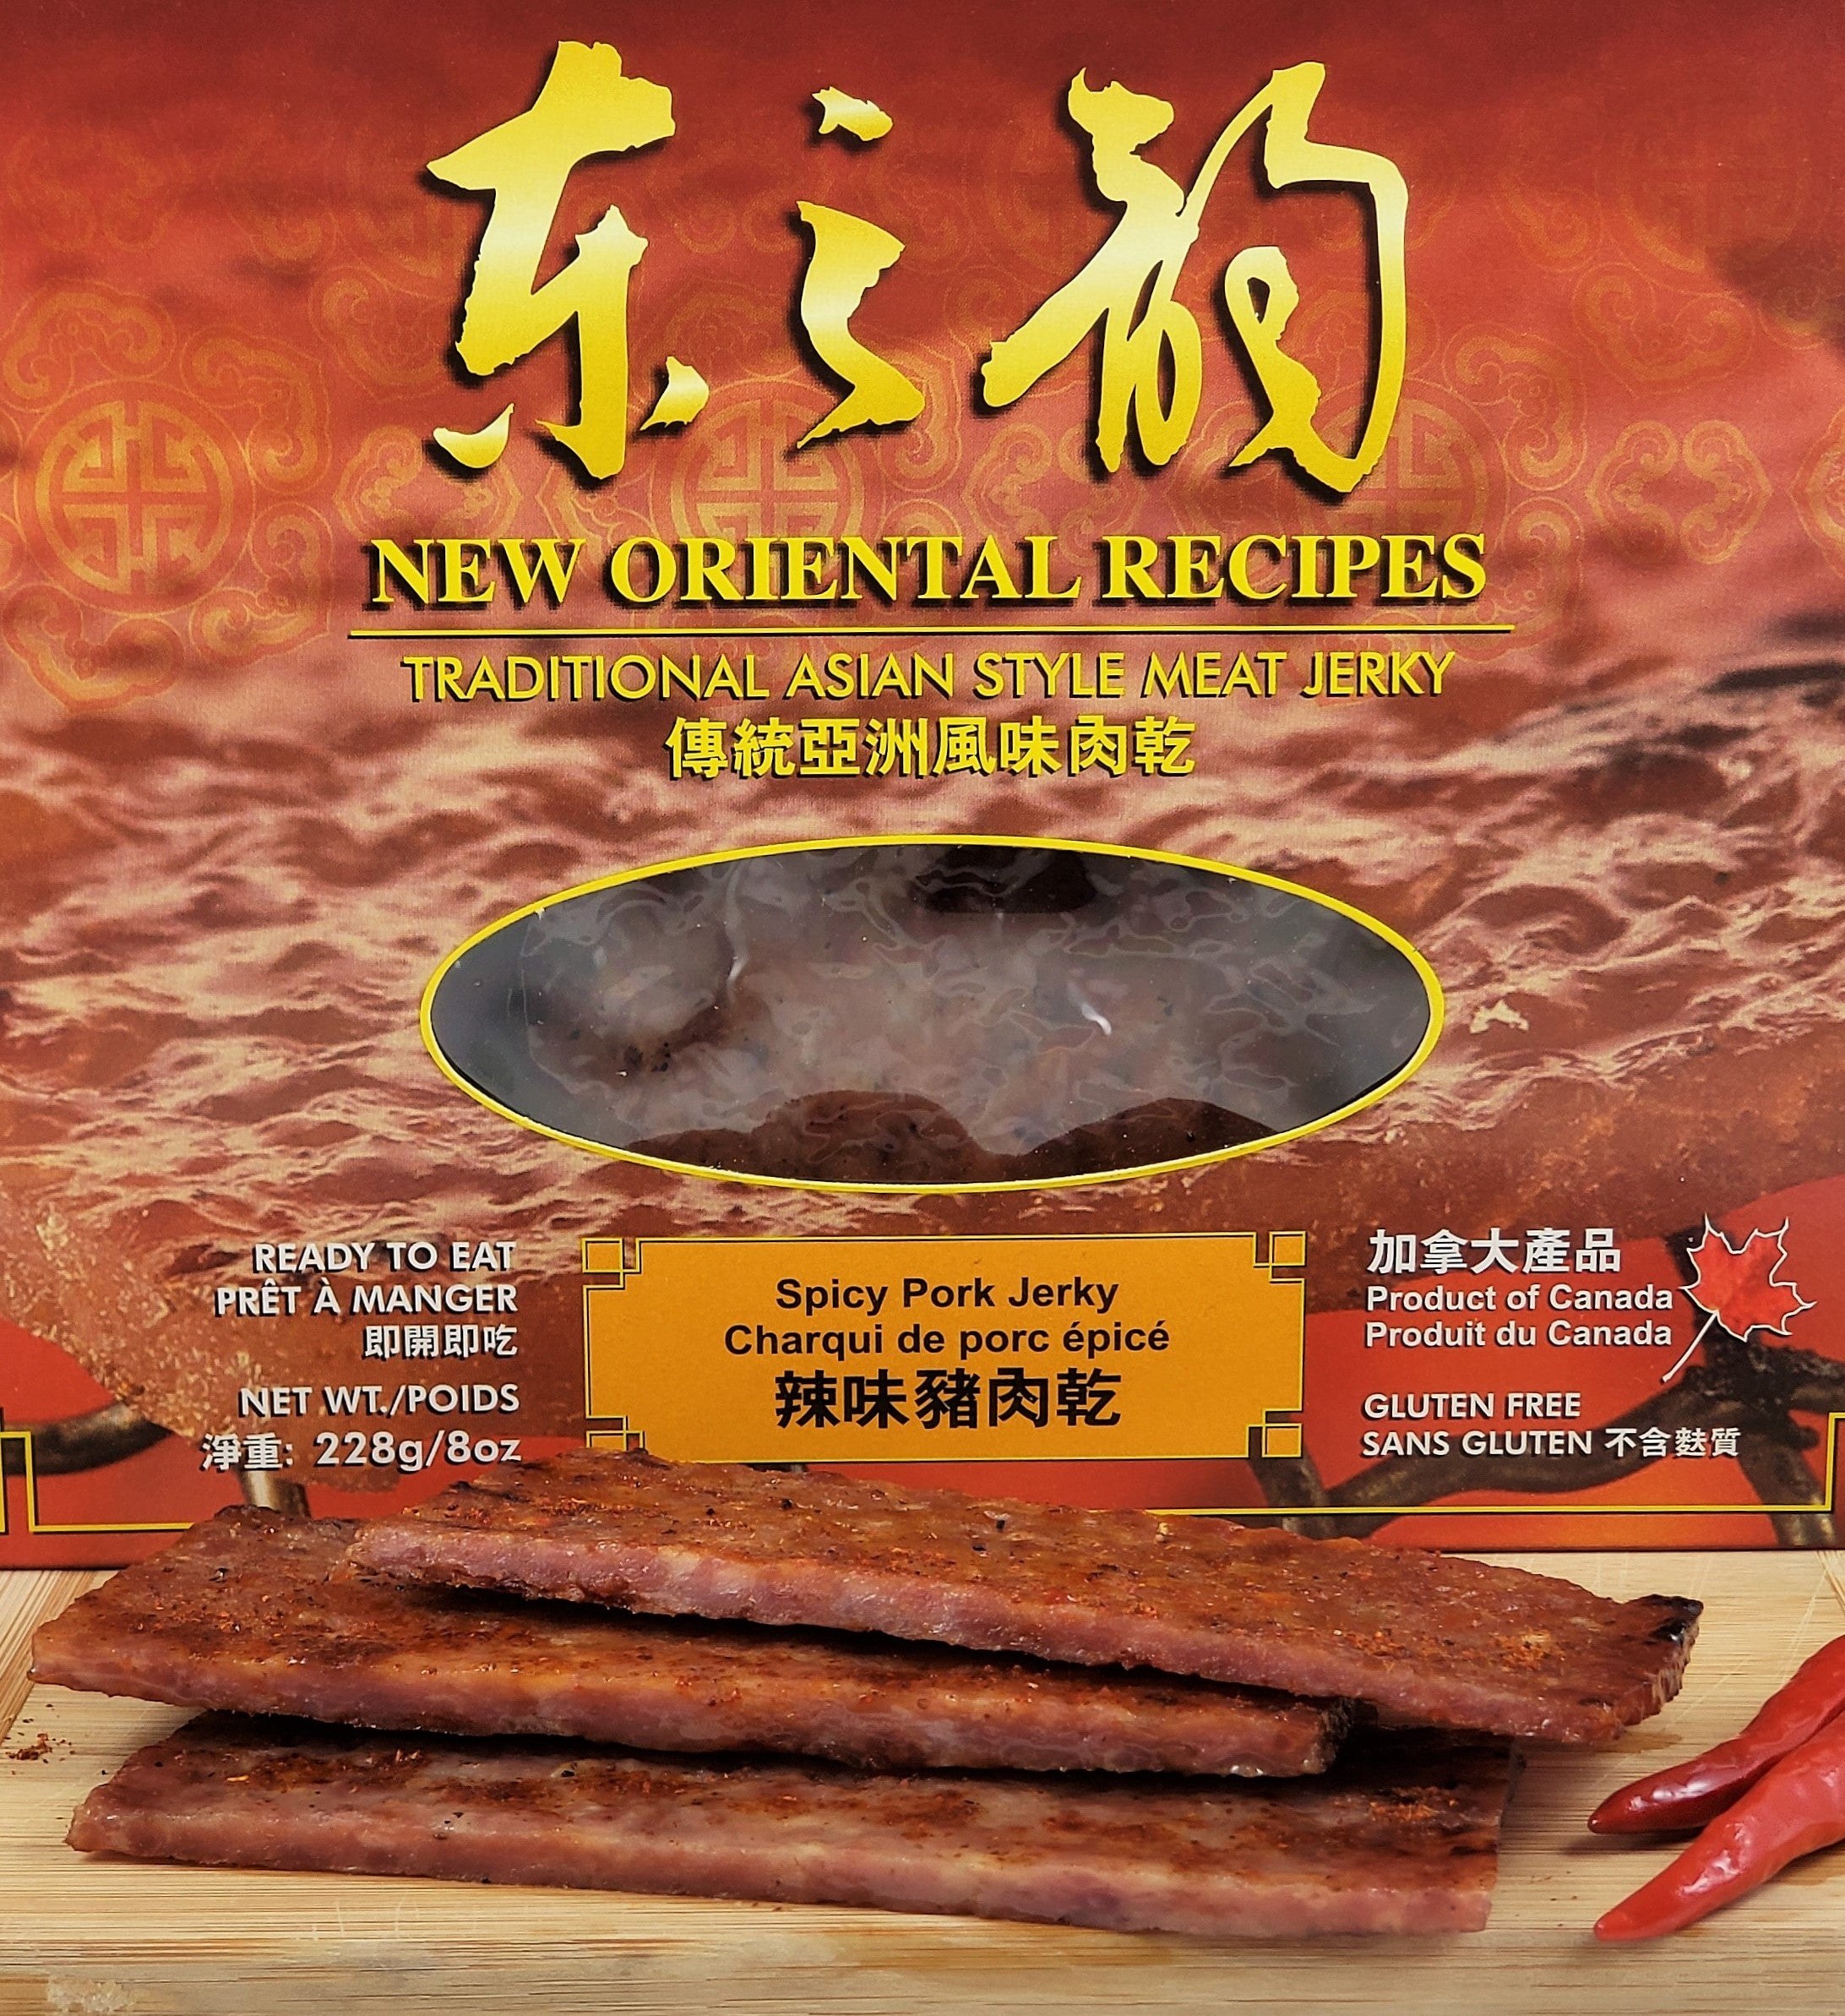 Spicy Pork Jerky 8 oz.